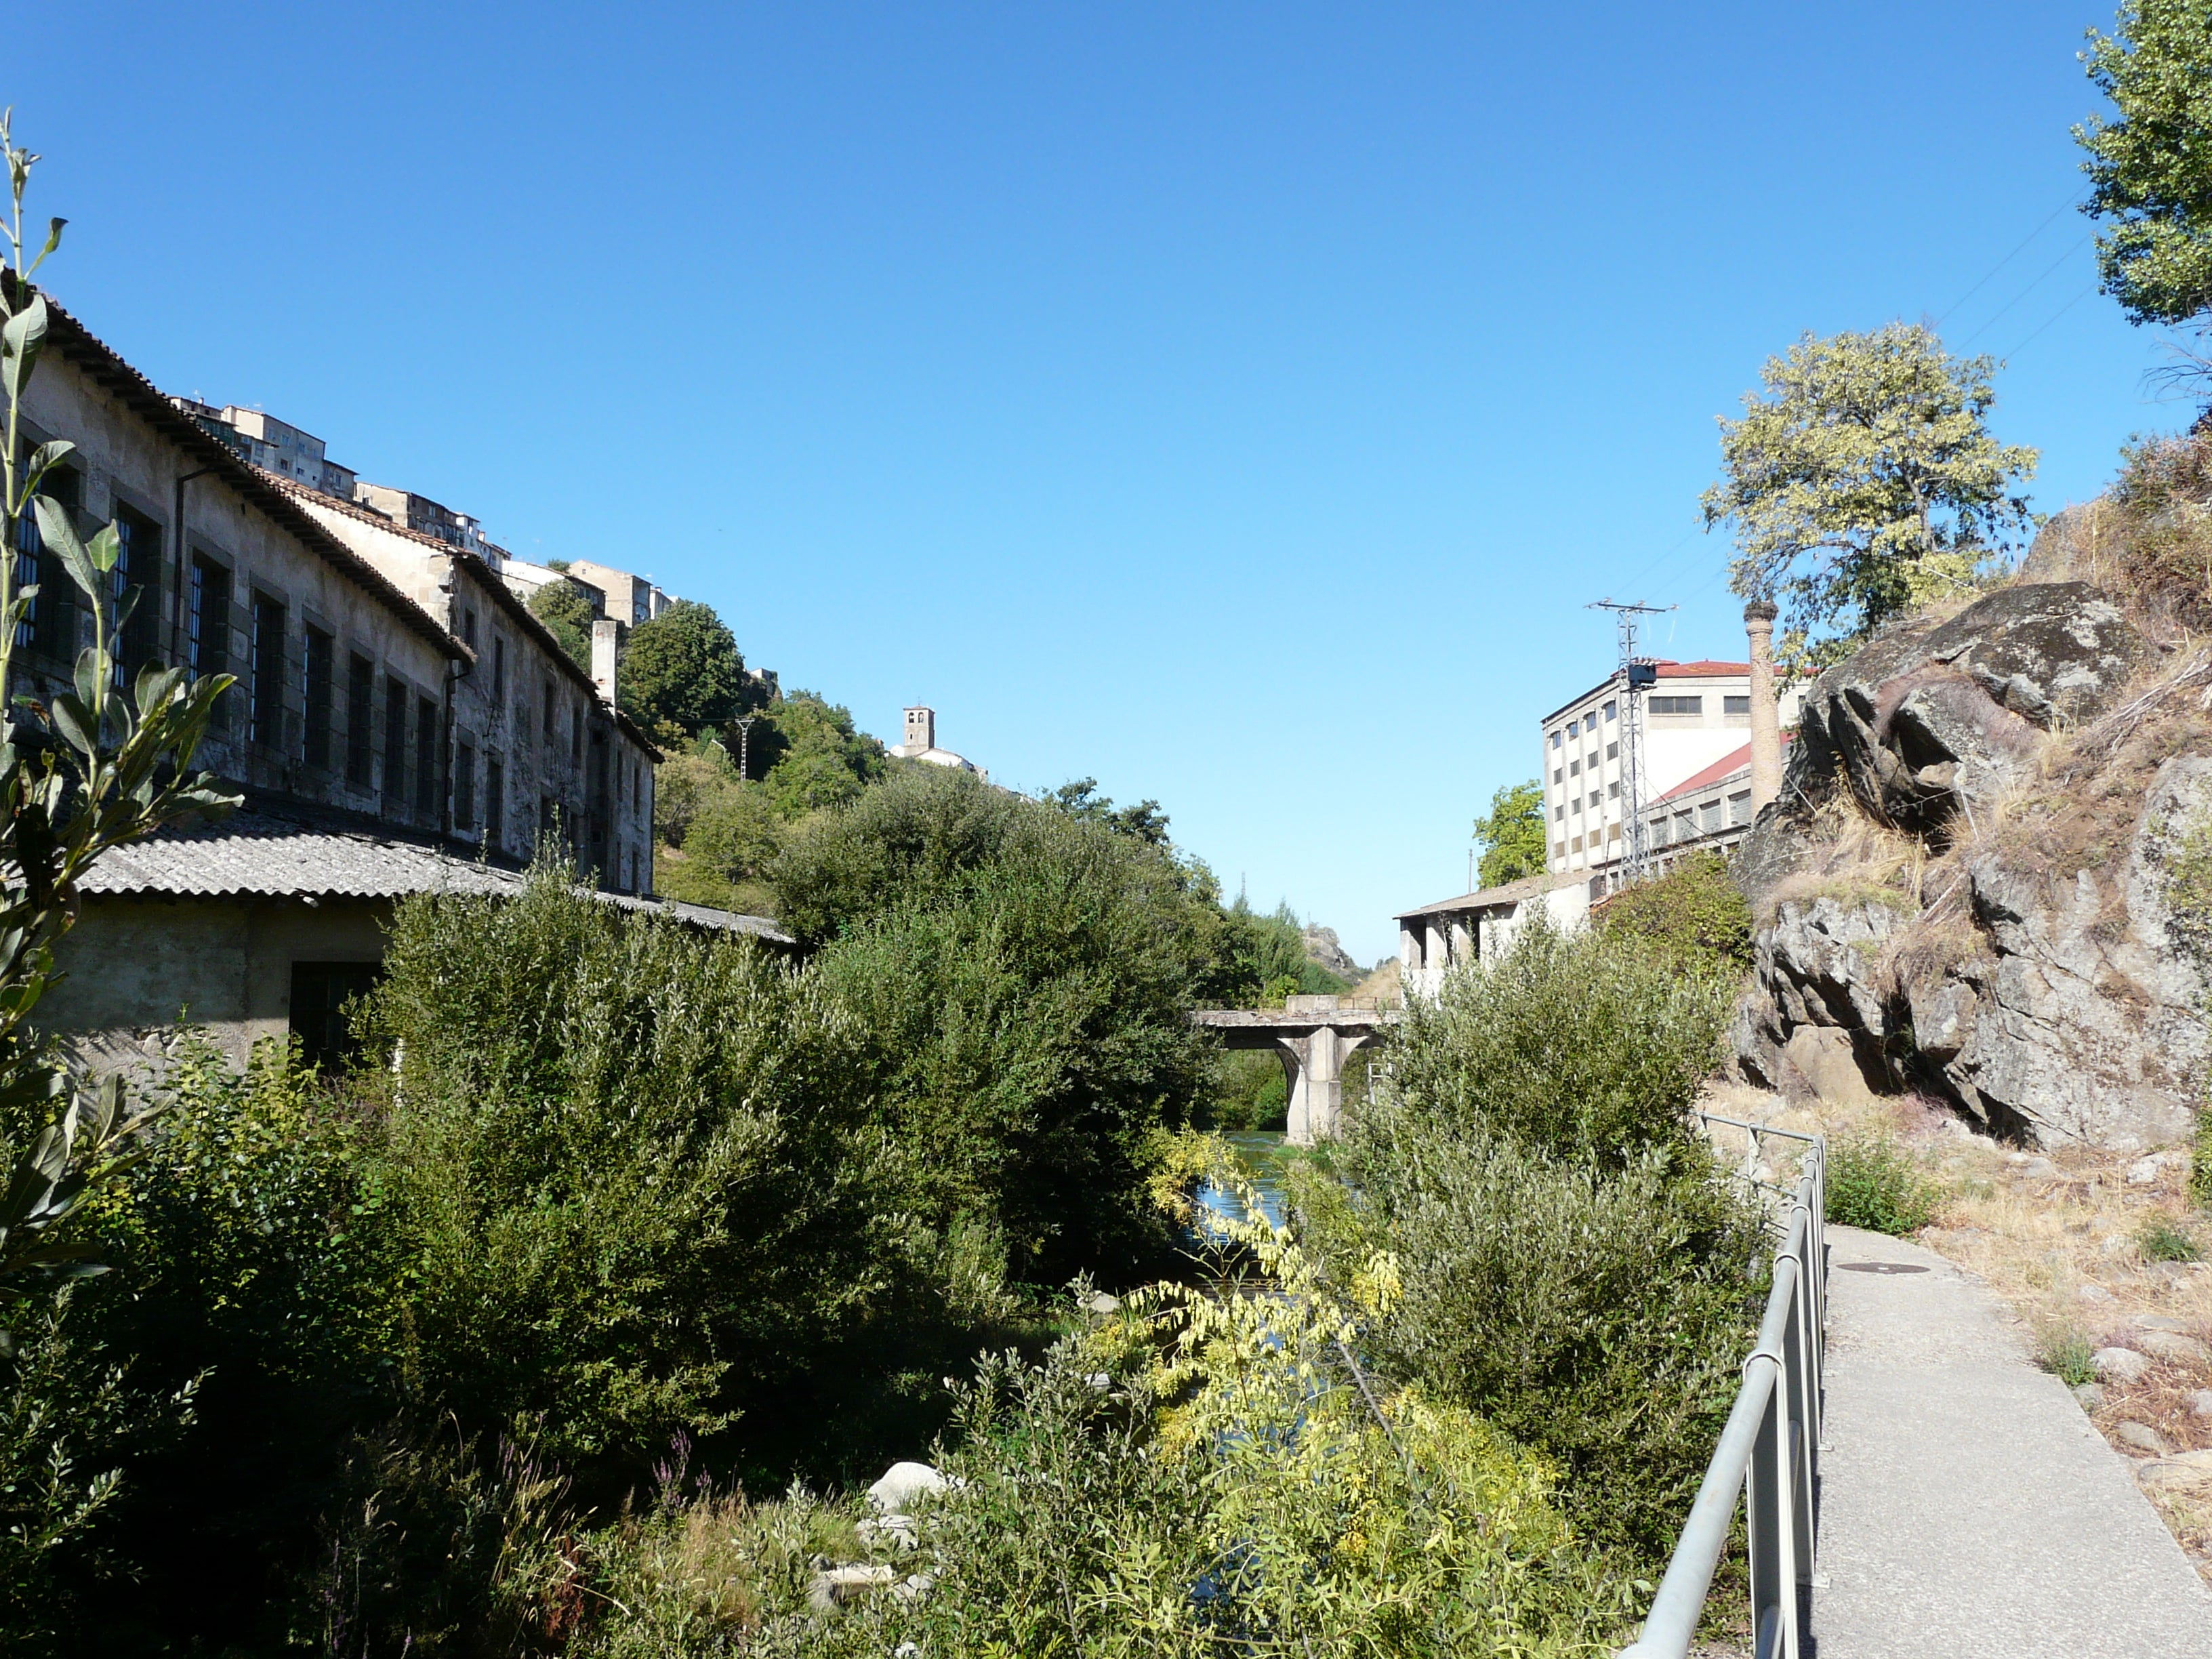 Route of the old textile factories of bejar